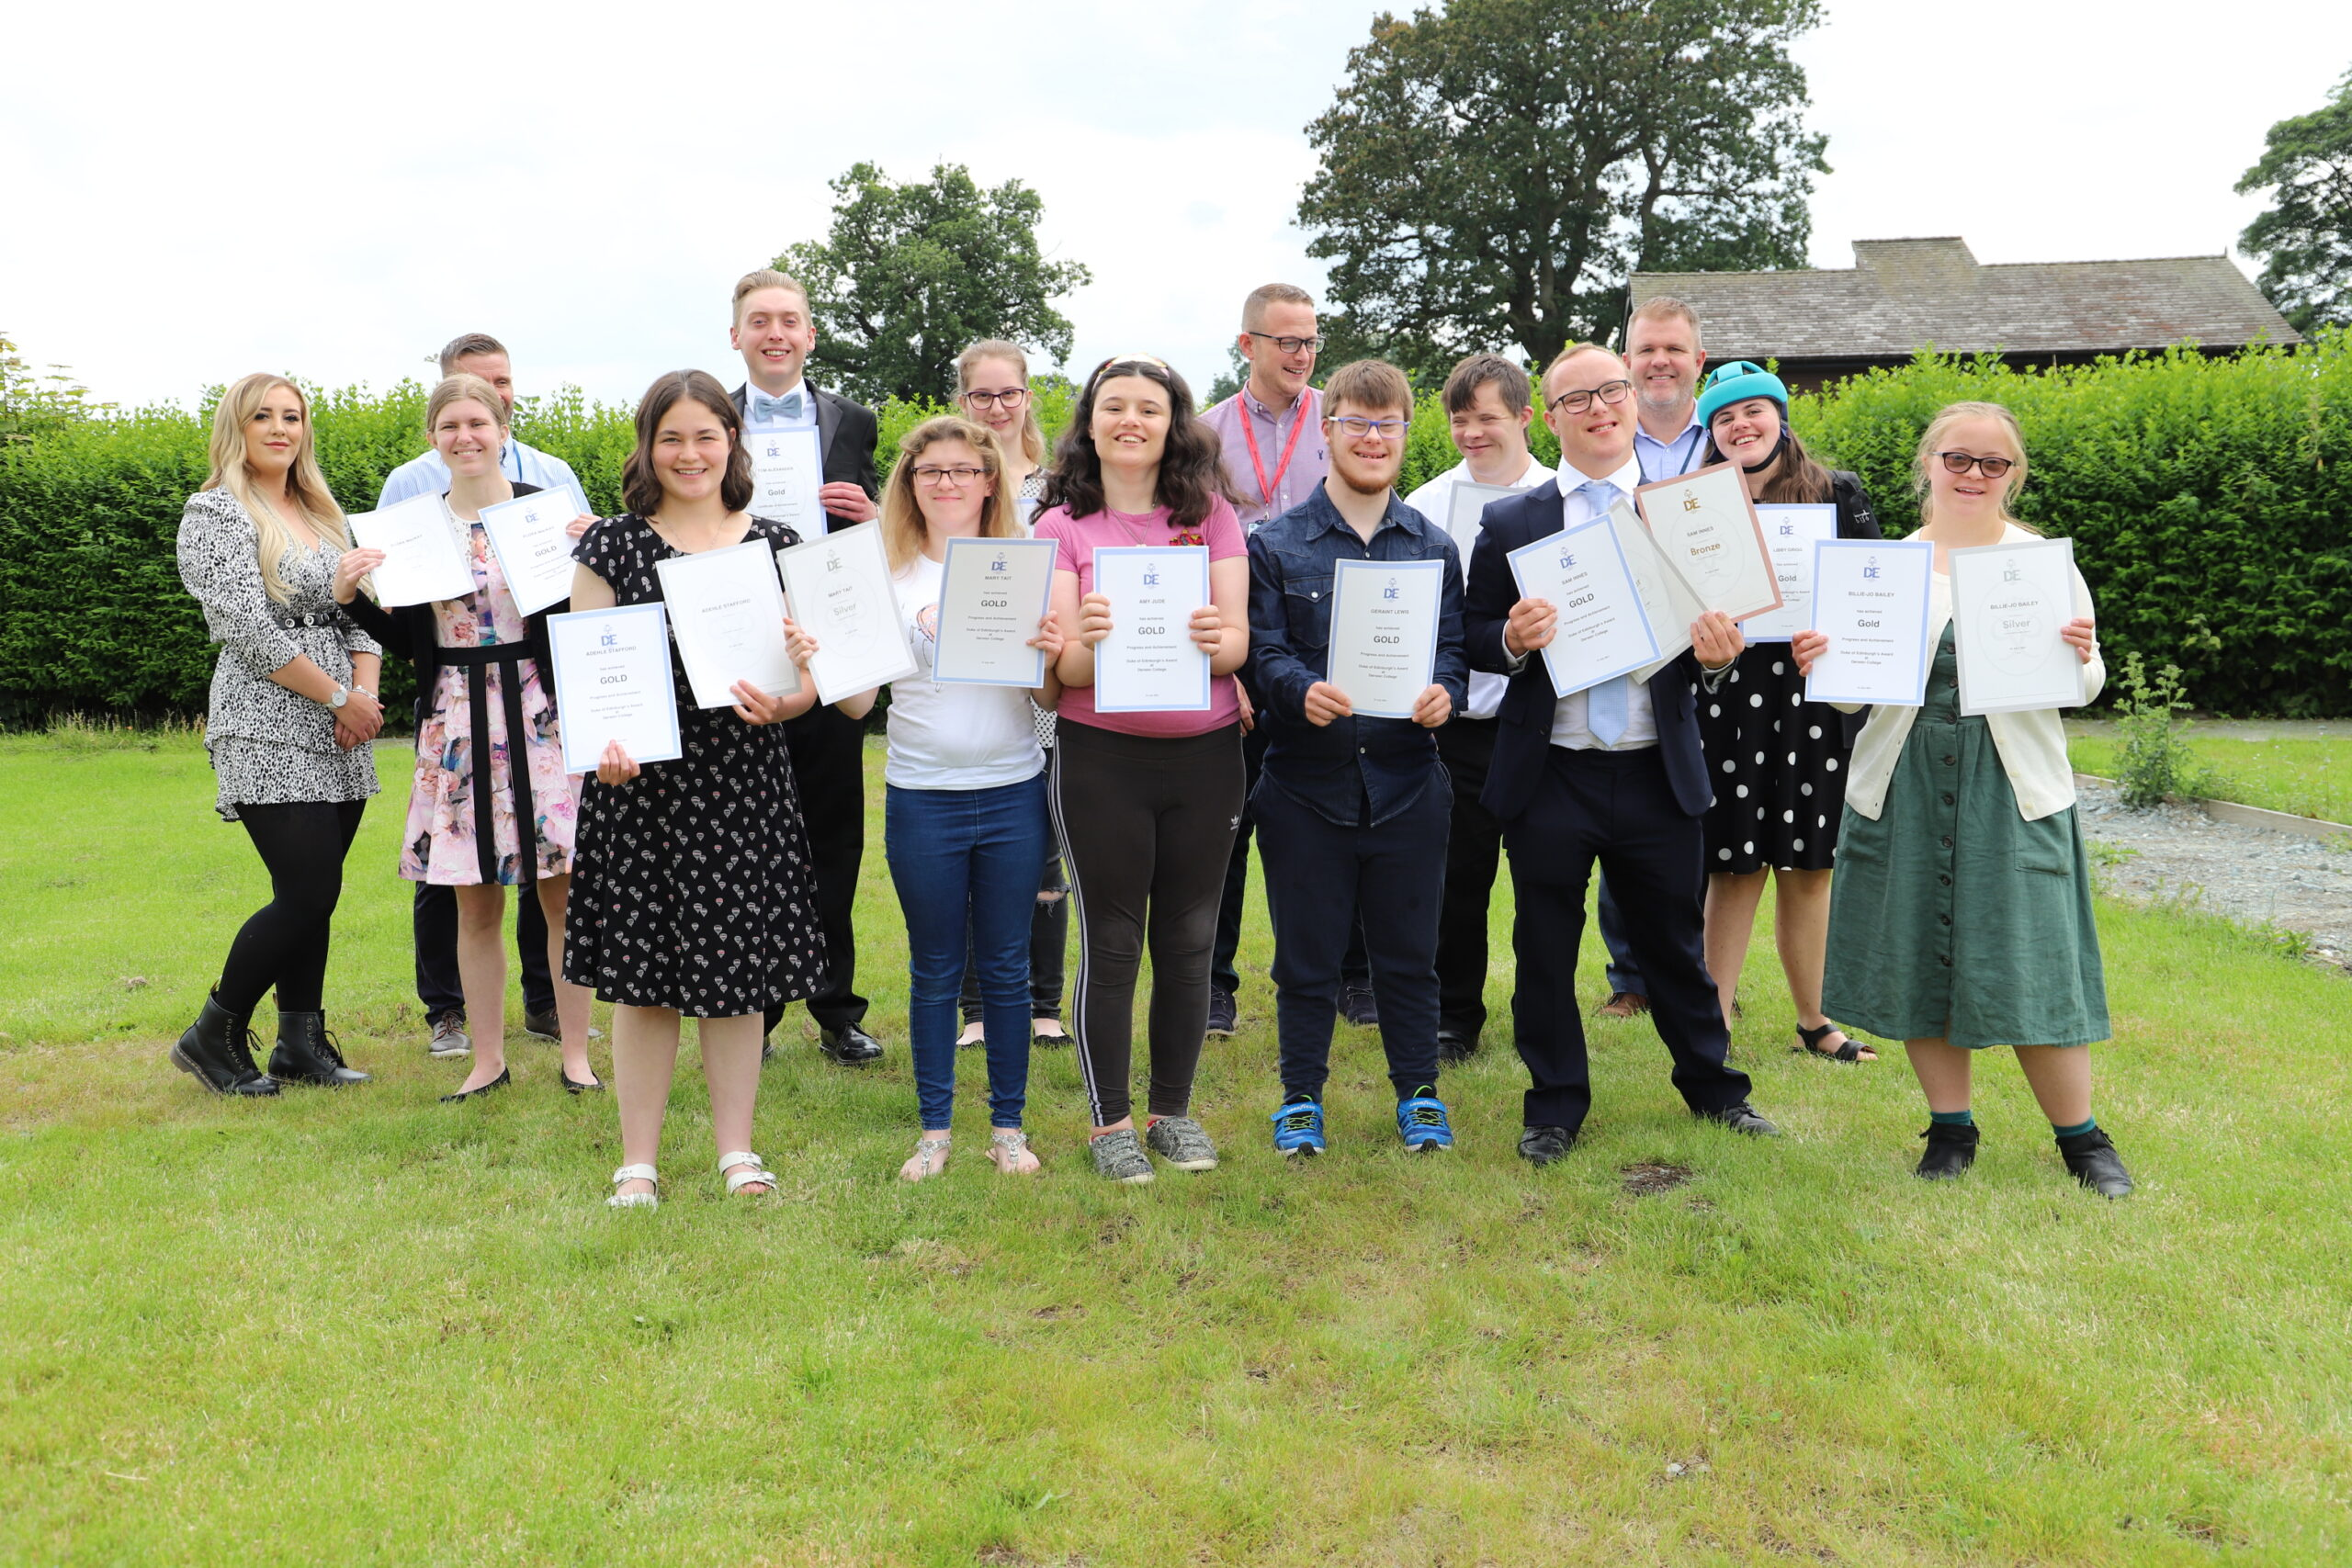 students from Derwen College standing well dressed on the college lawn with the DofE gold certificates